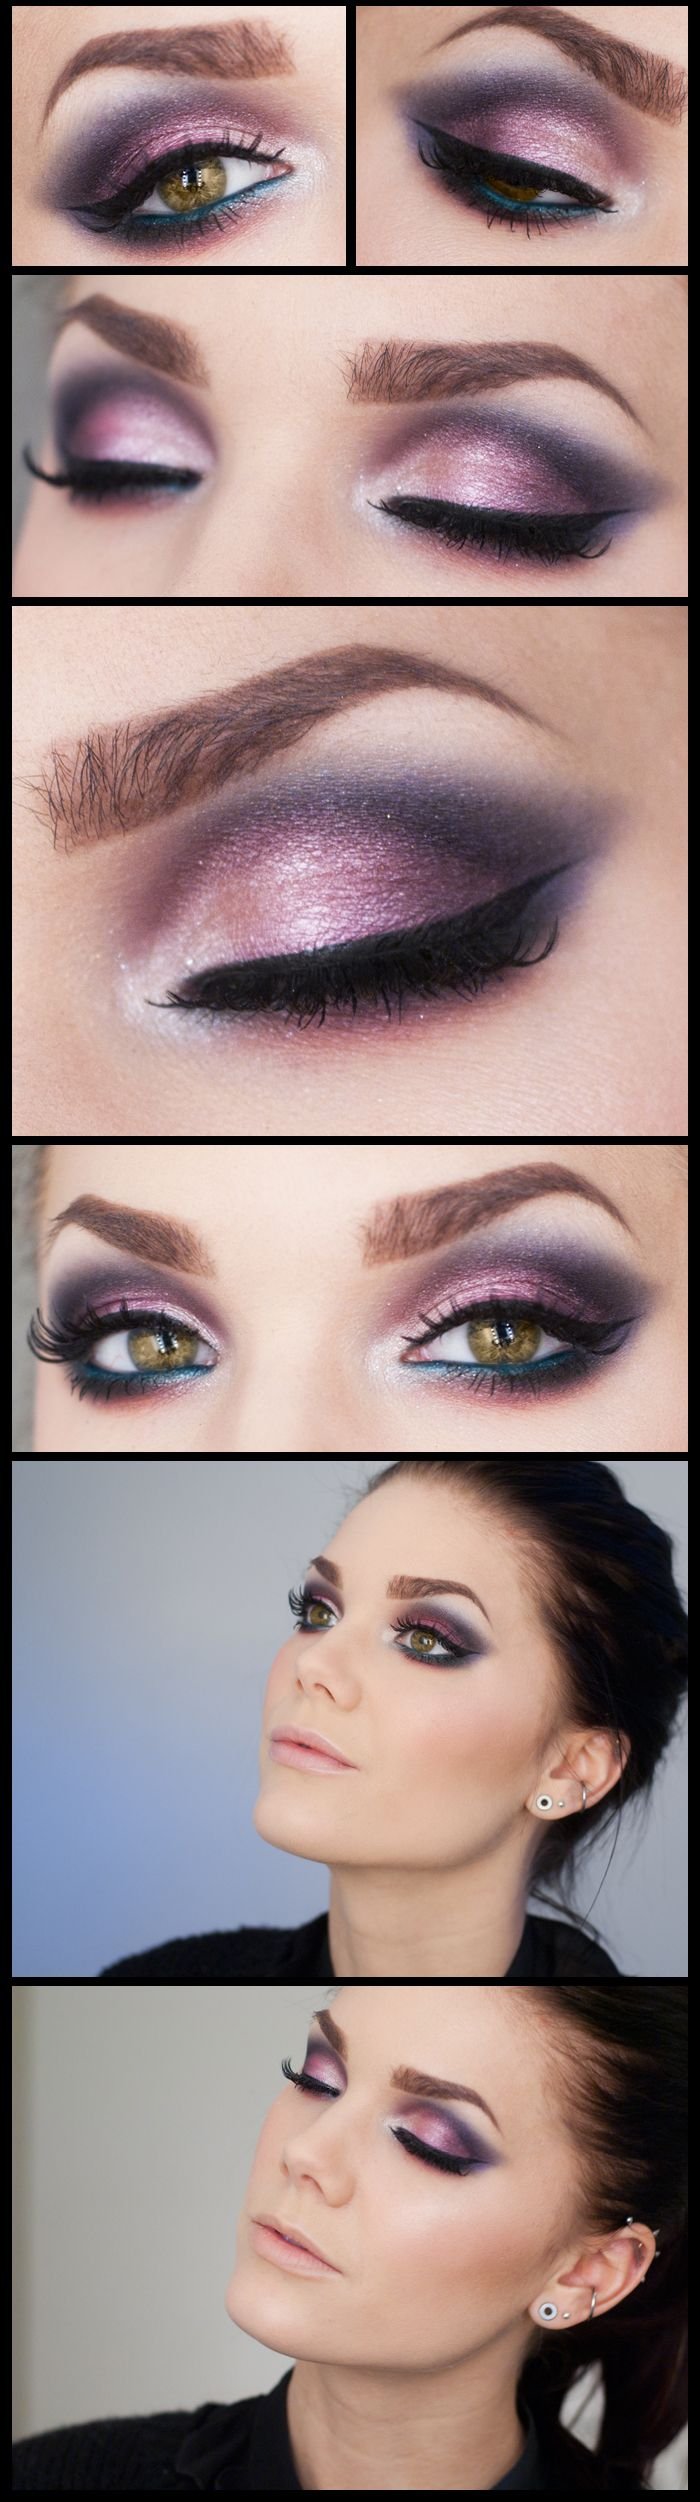 Shimmery pink purple and blue eyeshadow look, black winged eyeliner, and light nude lip. Look created by makeup artist Linda Hallberg. Bright and dramatic, great for a party, club, or girls night out and works in spring summer fall and winter.